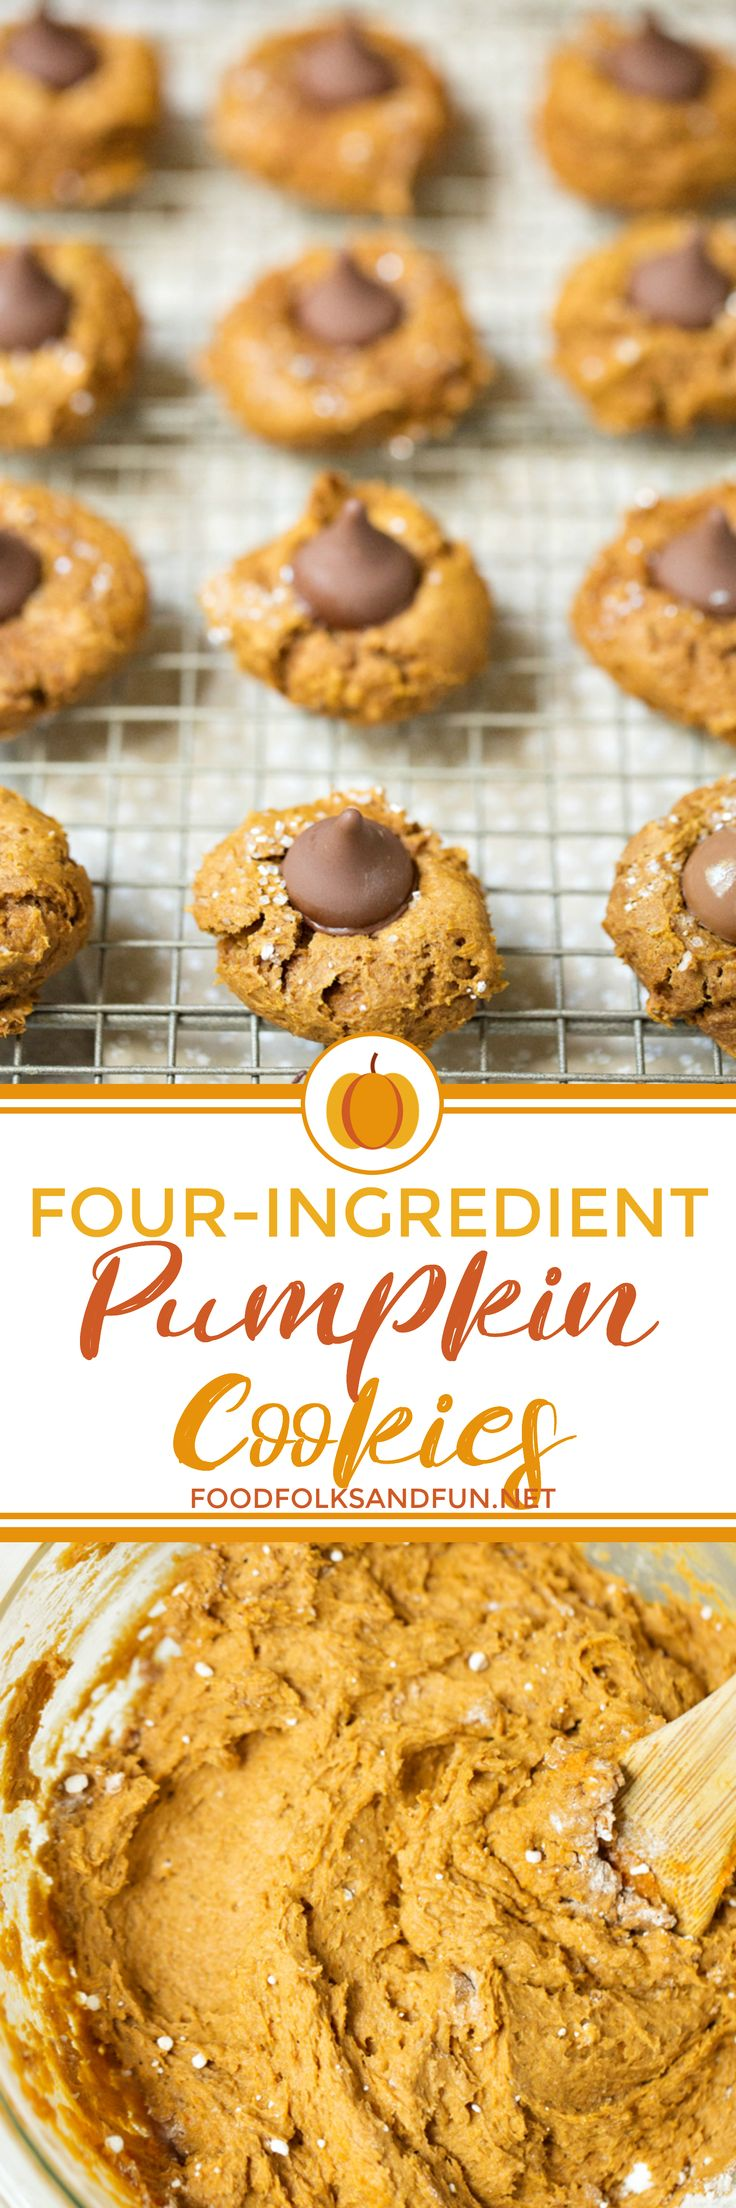 Four ingredients are all you need to make these Pumpkin Blossom Cookies! Grab a spice cake mix, can of pumpkin, Hershey's Kisses, and decorating sugar and let's get started!